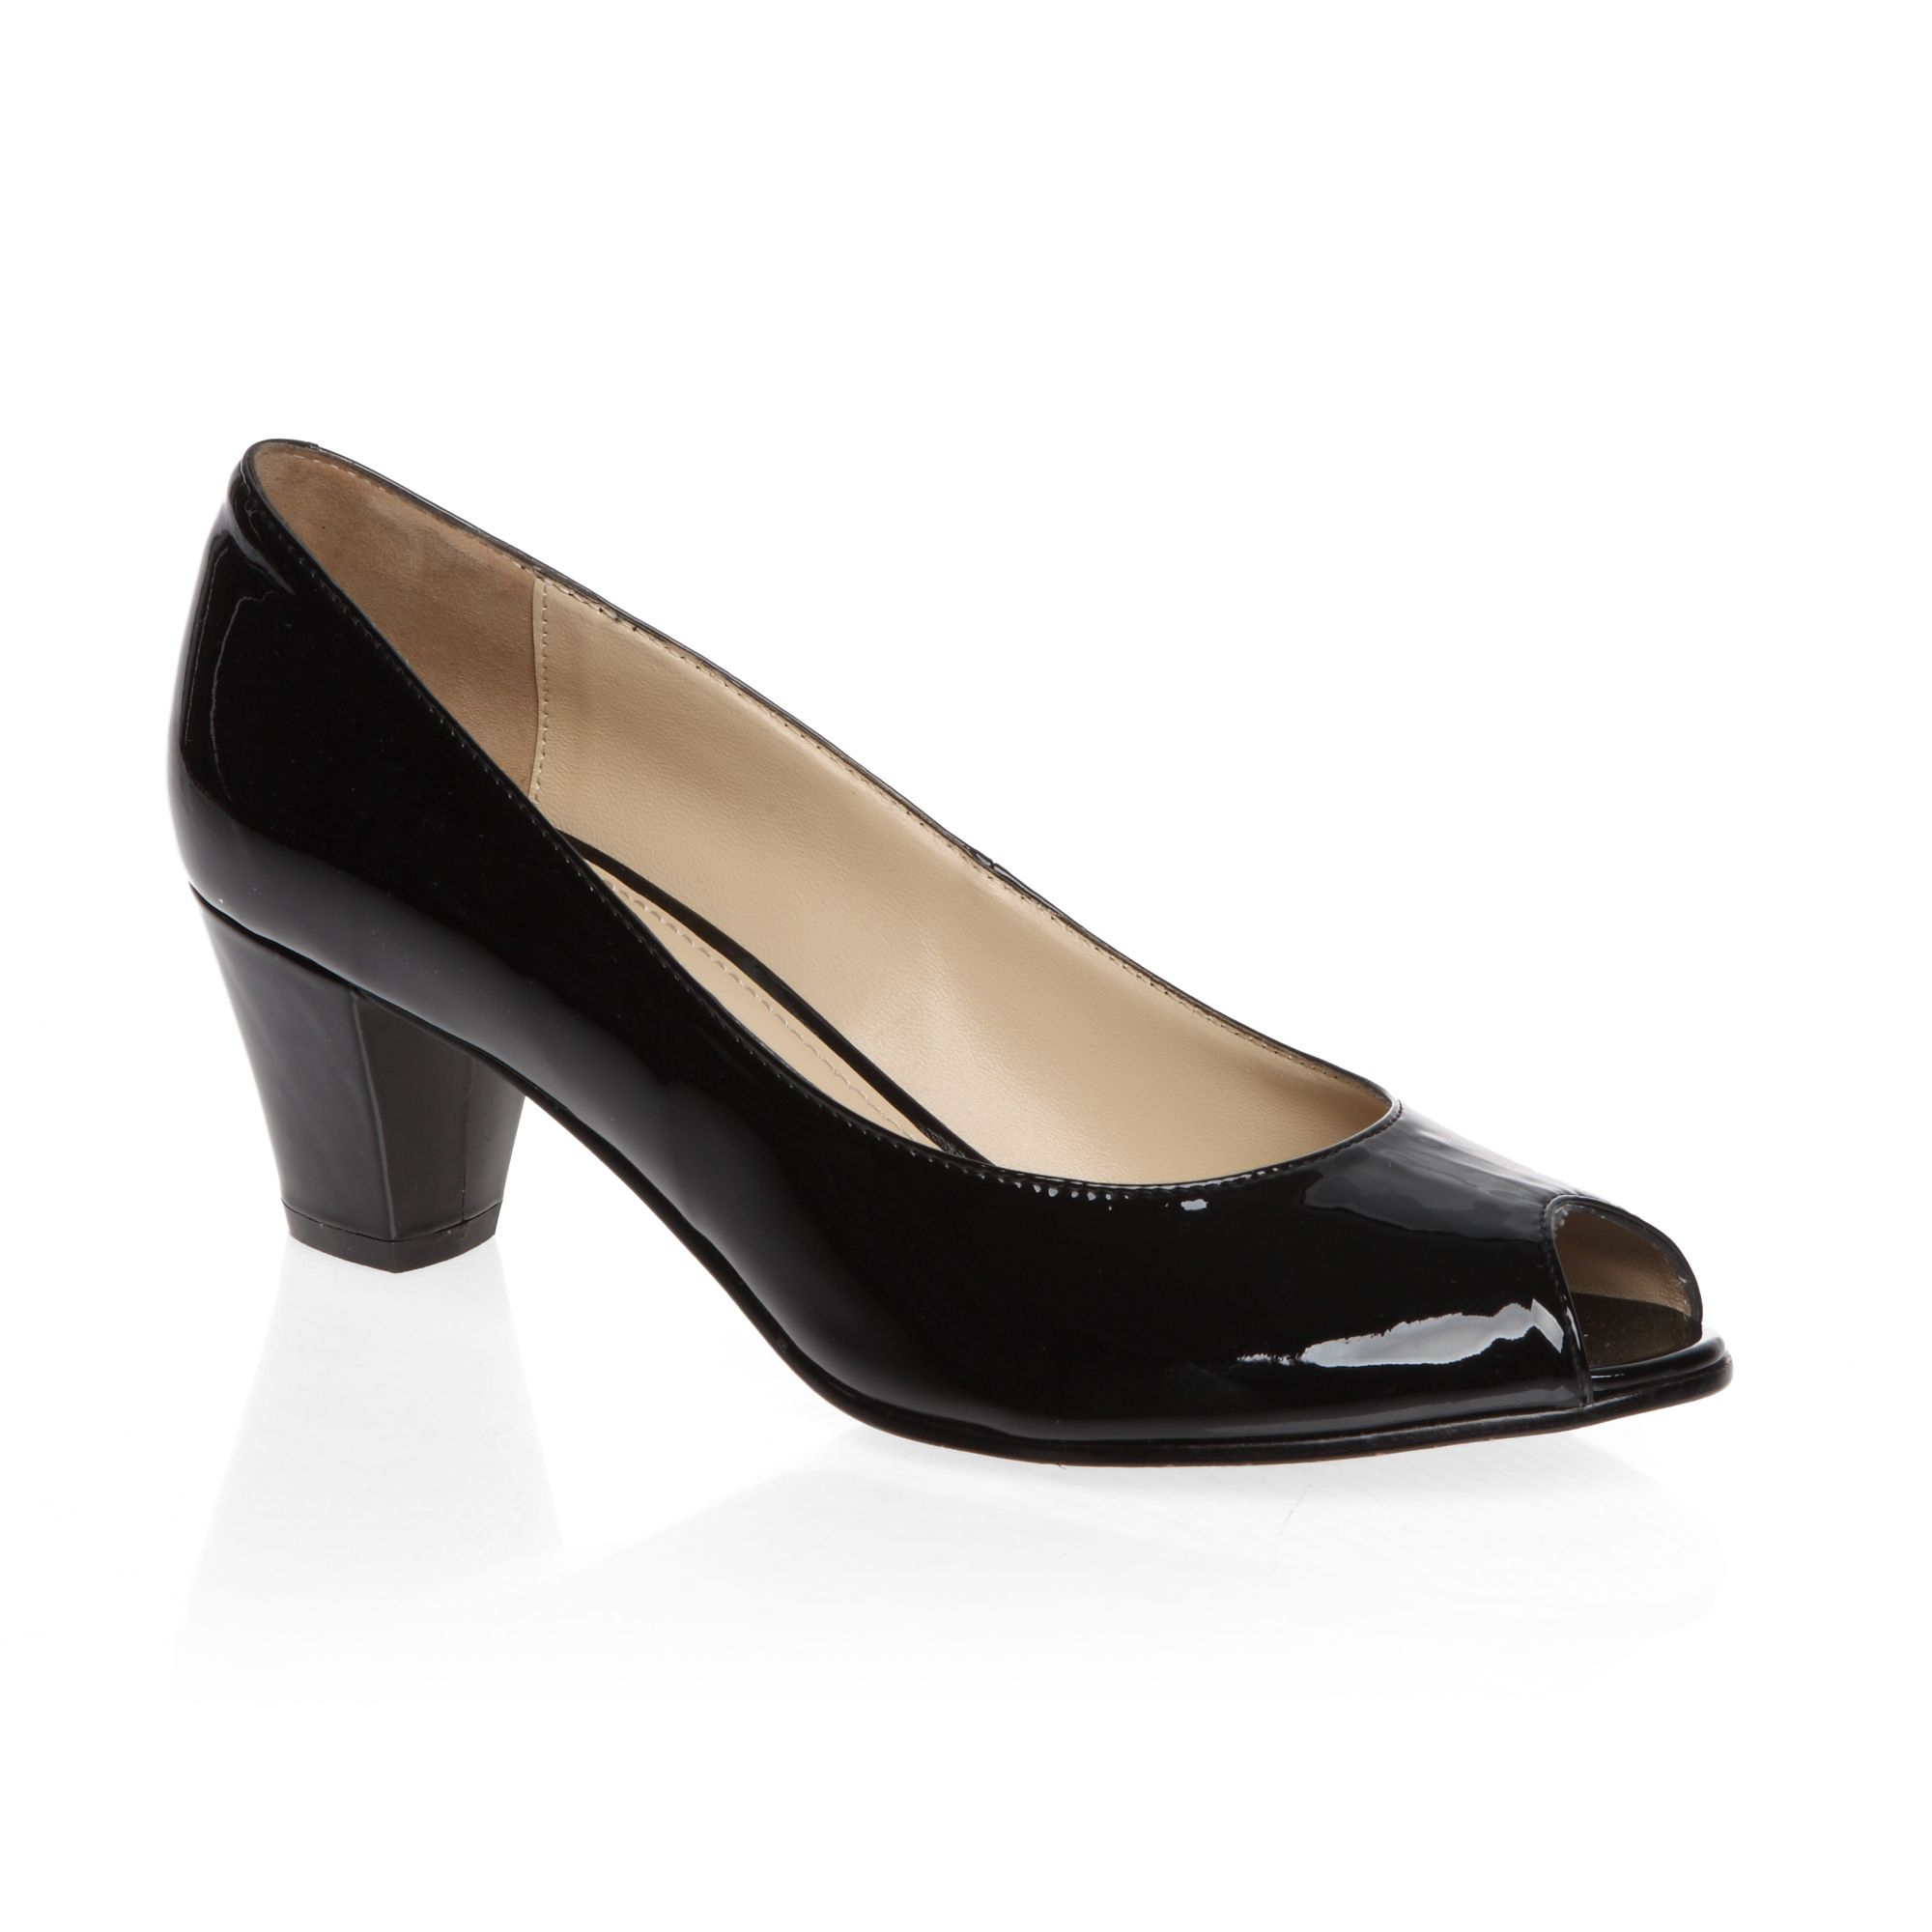 mascotte mid heeled peep toe patent court shoes in black